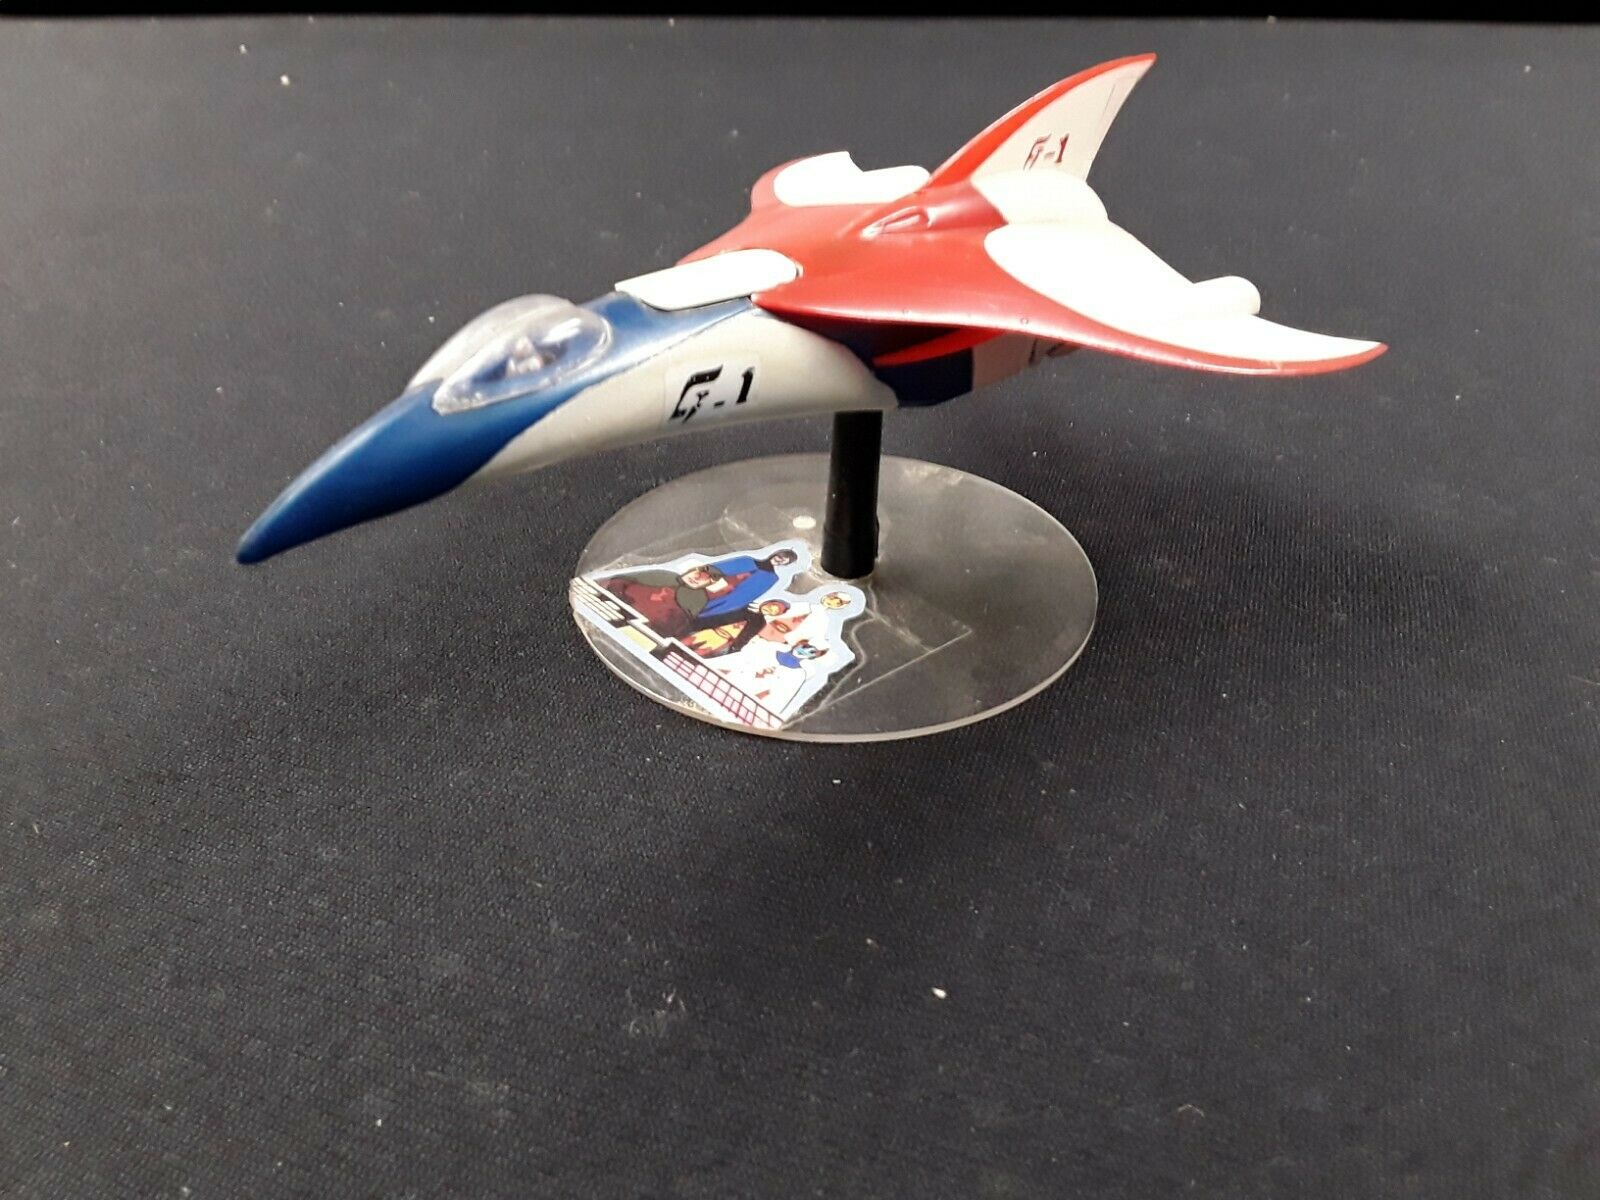 1980 battle o the Planet Gatchaman Mark G1 Jet Plane G Force Anime Vintage Rare